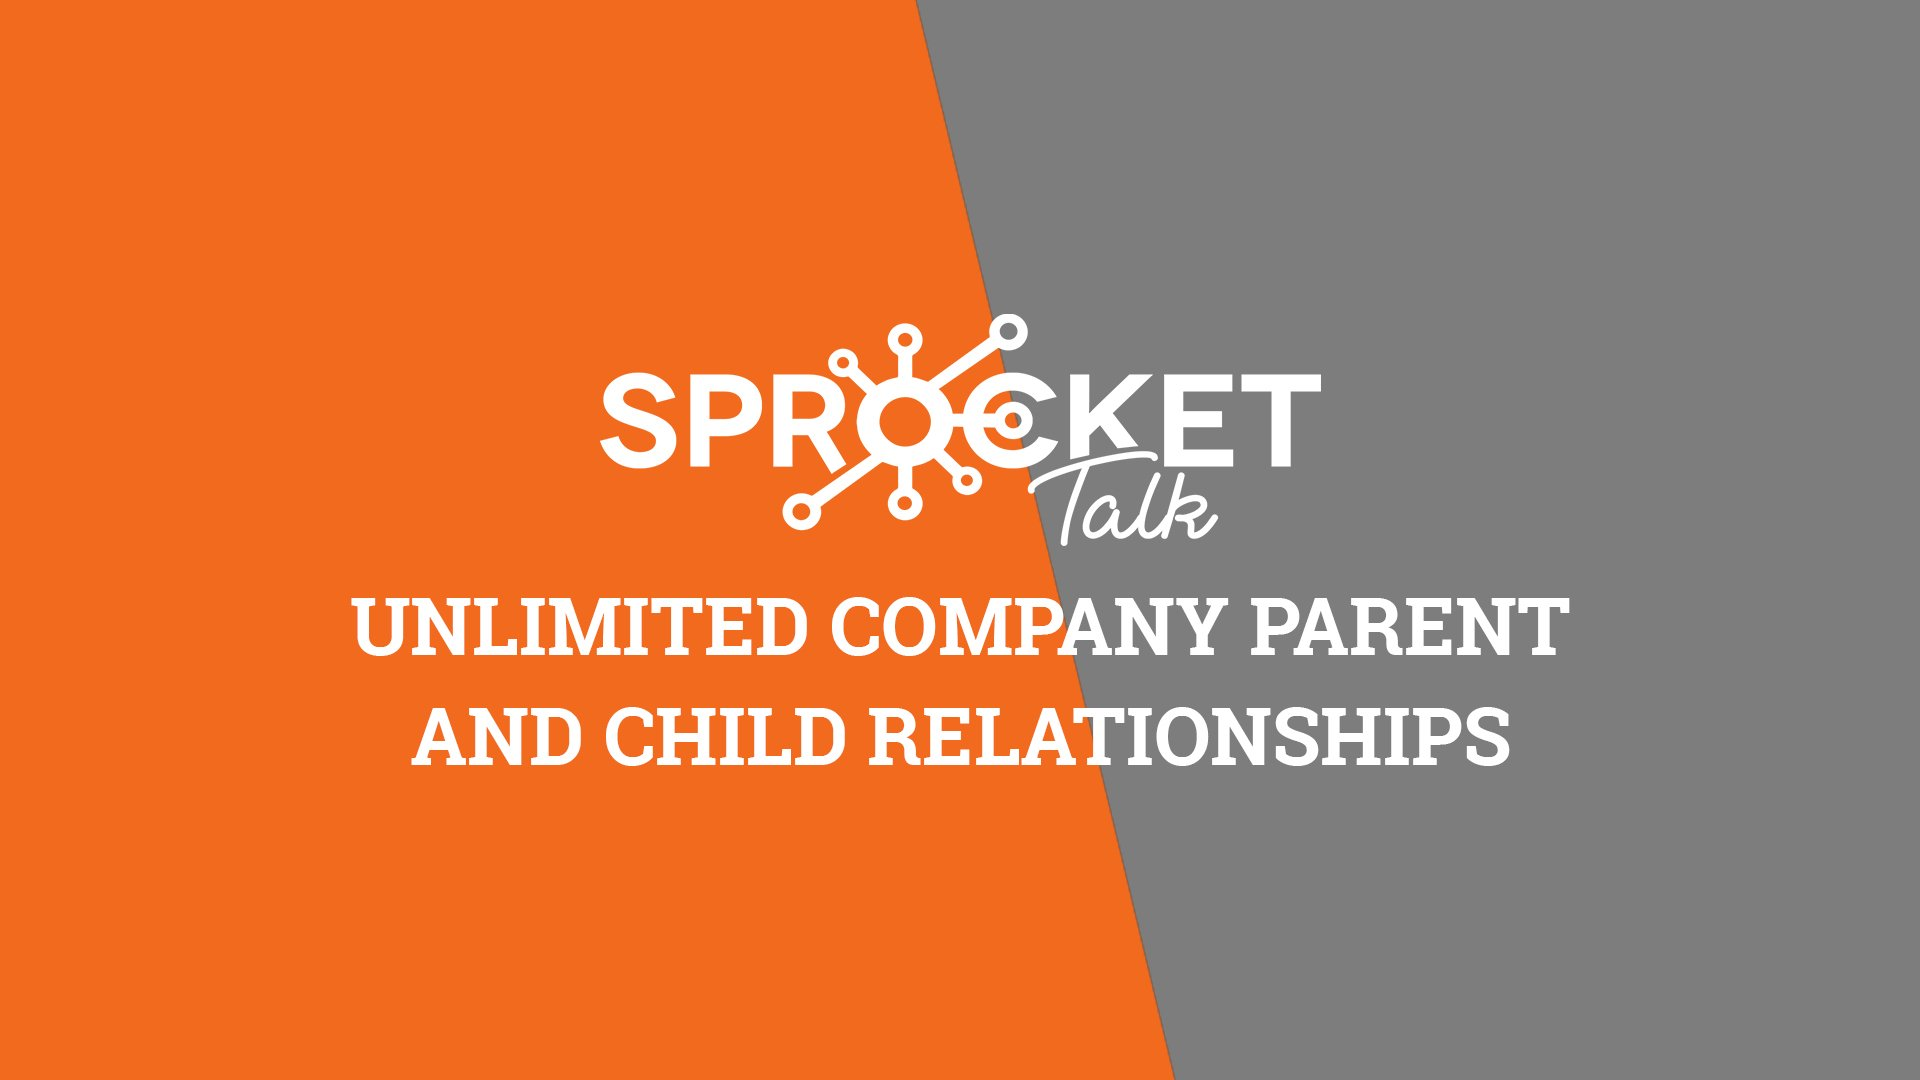 Unlimited Company Parent And Child Relationships